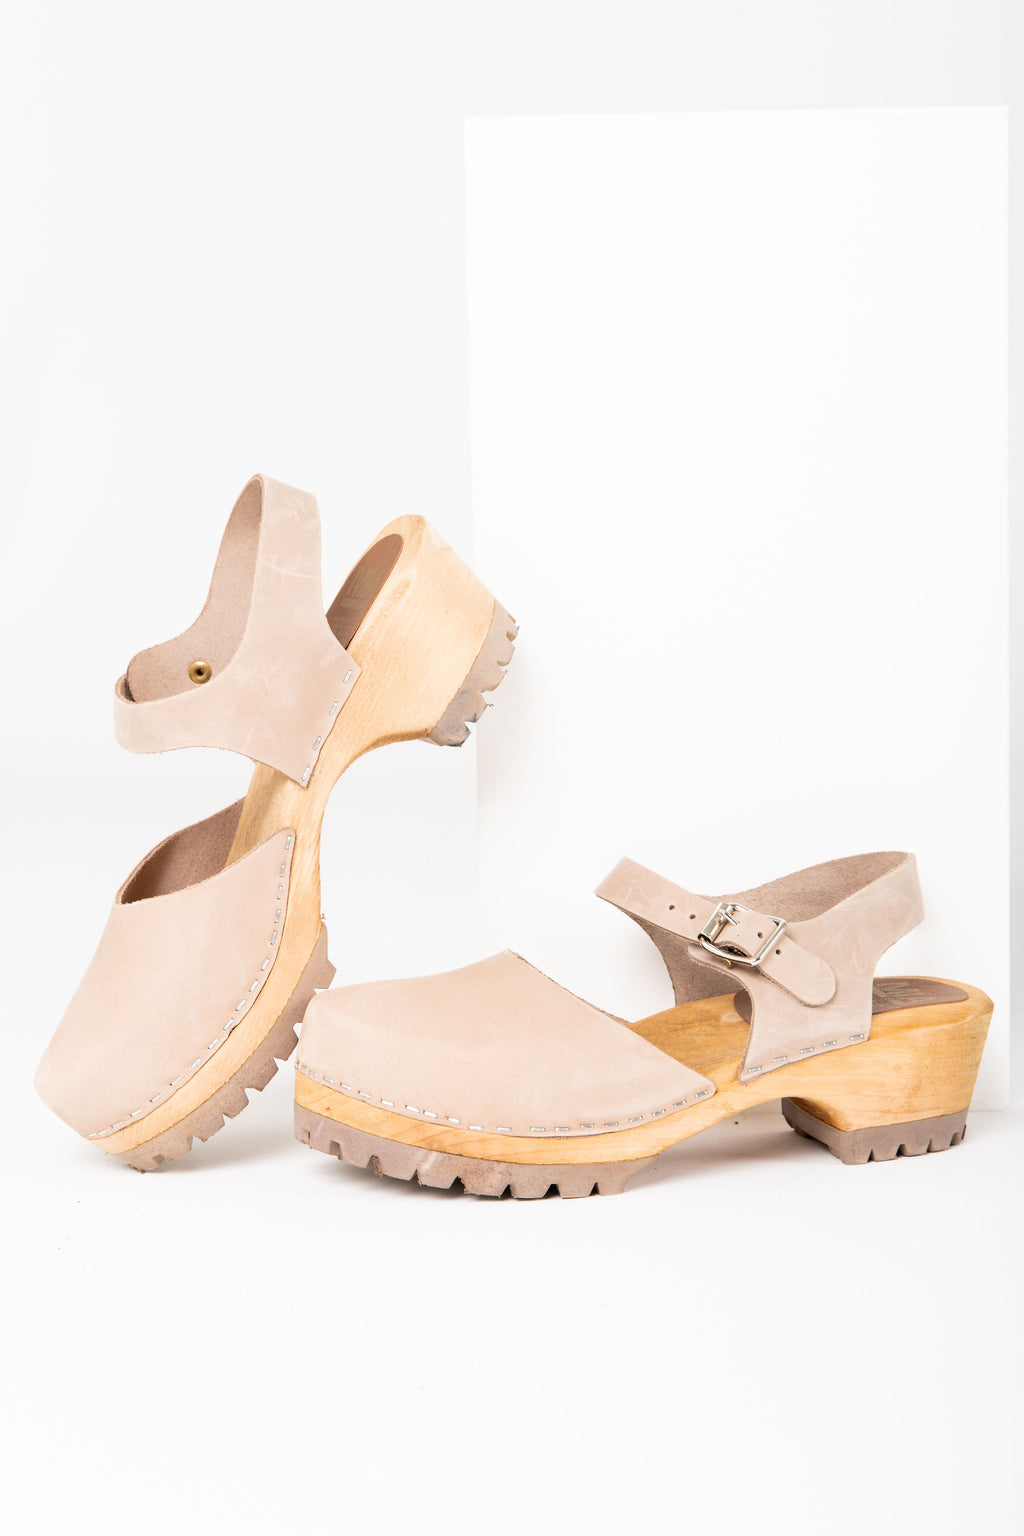 MIA: Freja Platform Clog in Taupe Leather